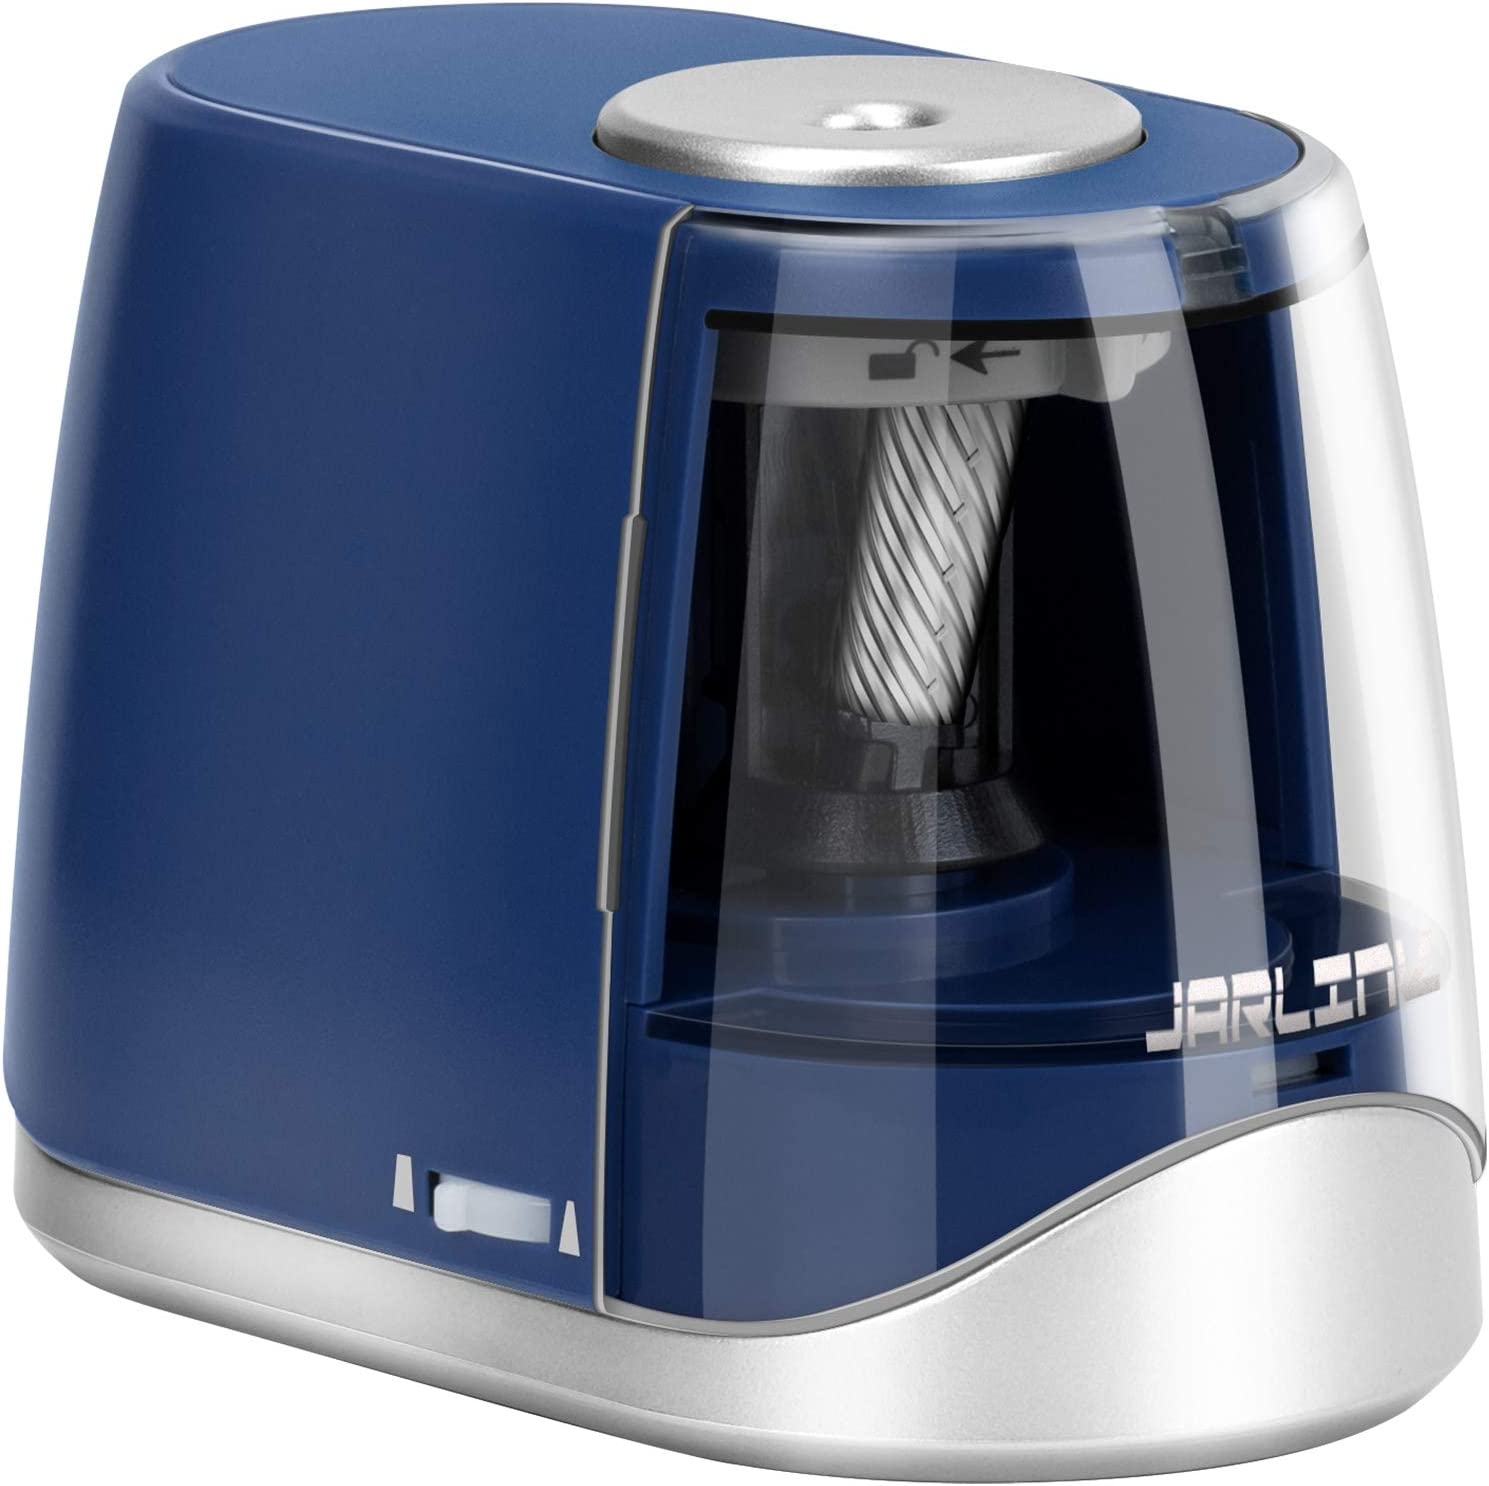 JARLINK Electric Pencil SEAL limited product Sharpener P Heavy-Duty Operated Japan's largest assortment Battery